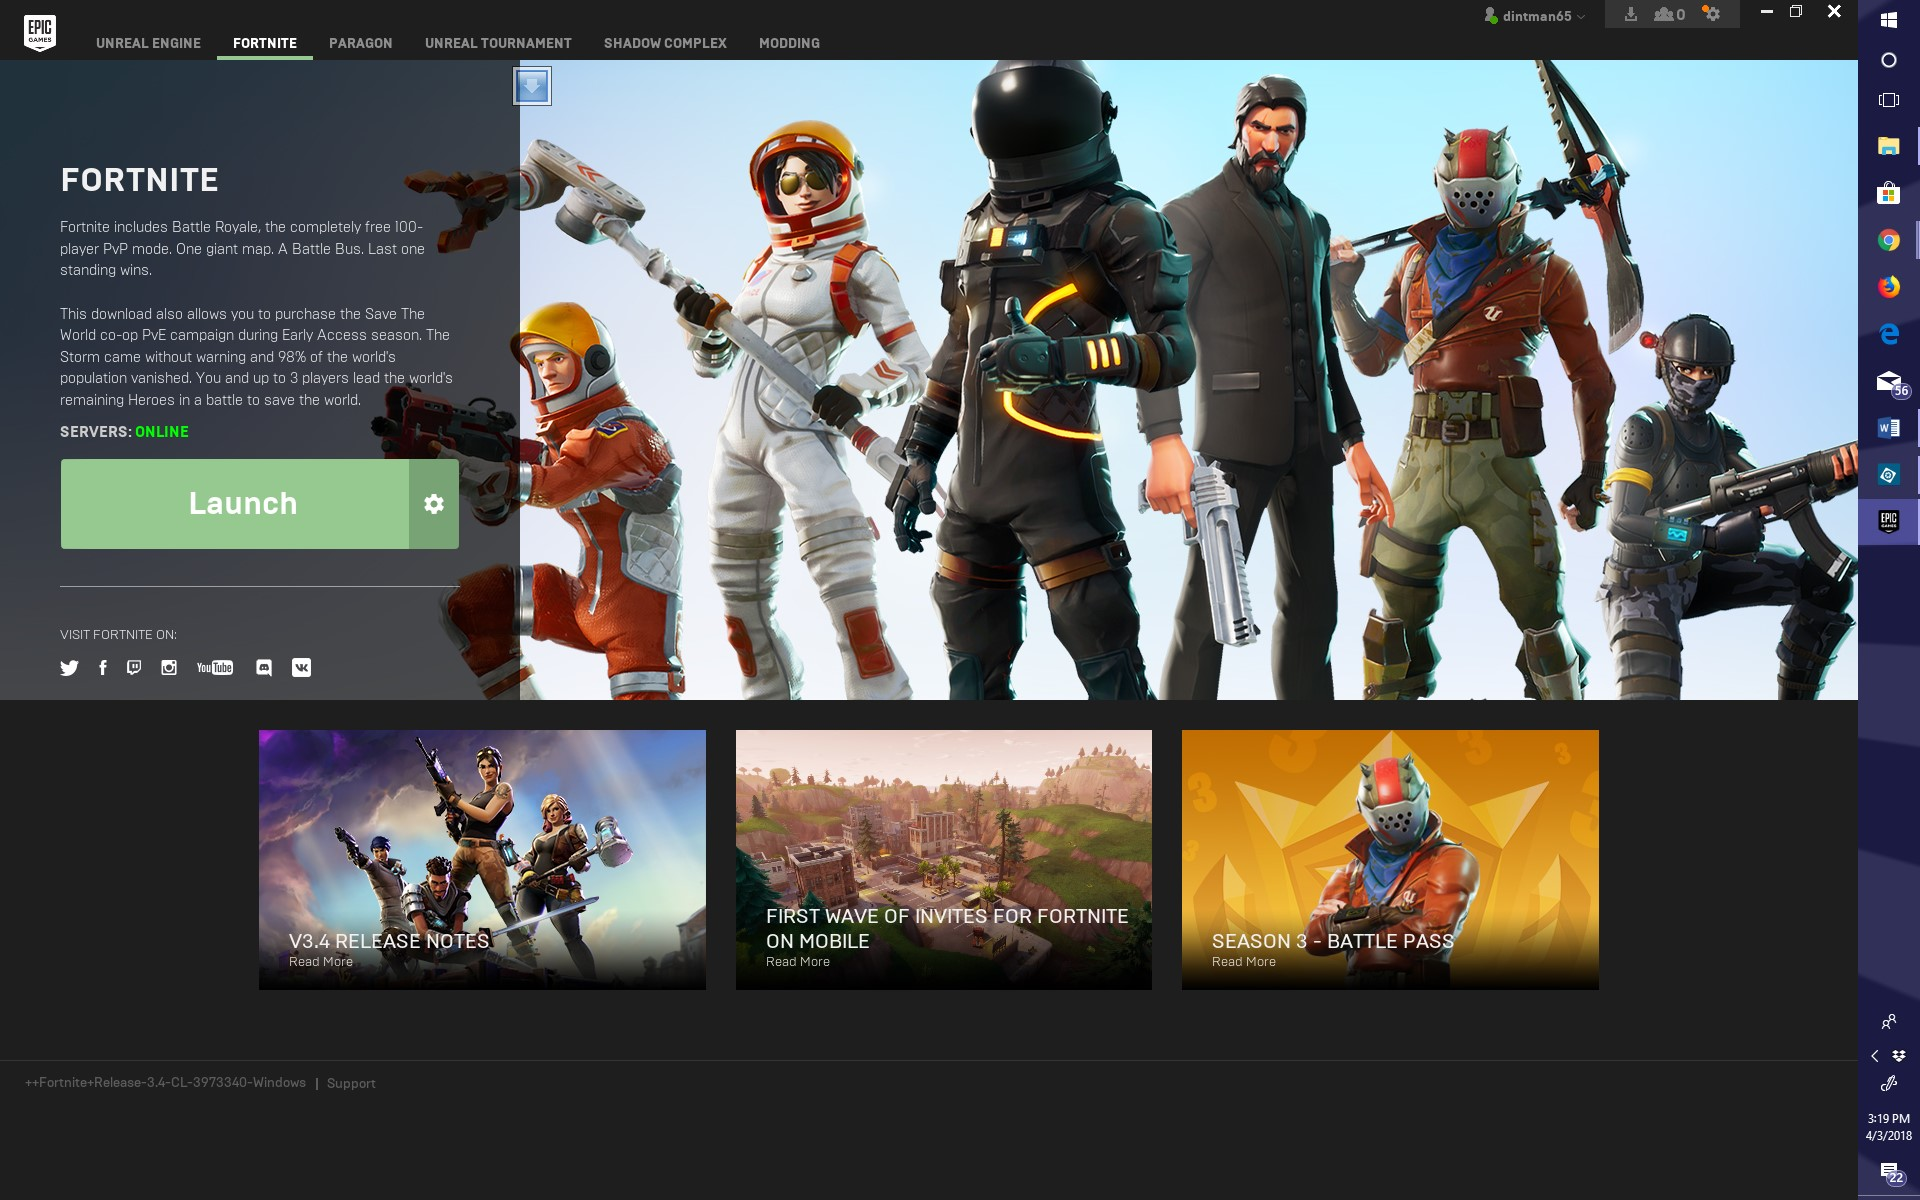 How Fortnite Drives the Battle Royale Genre to New Heights